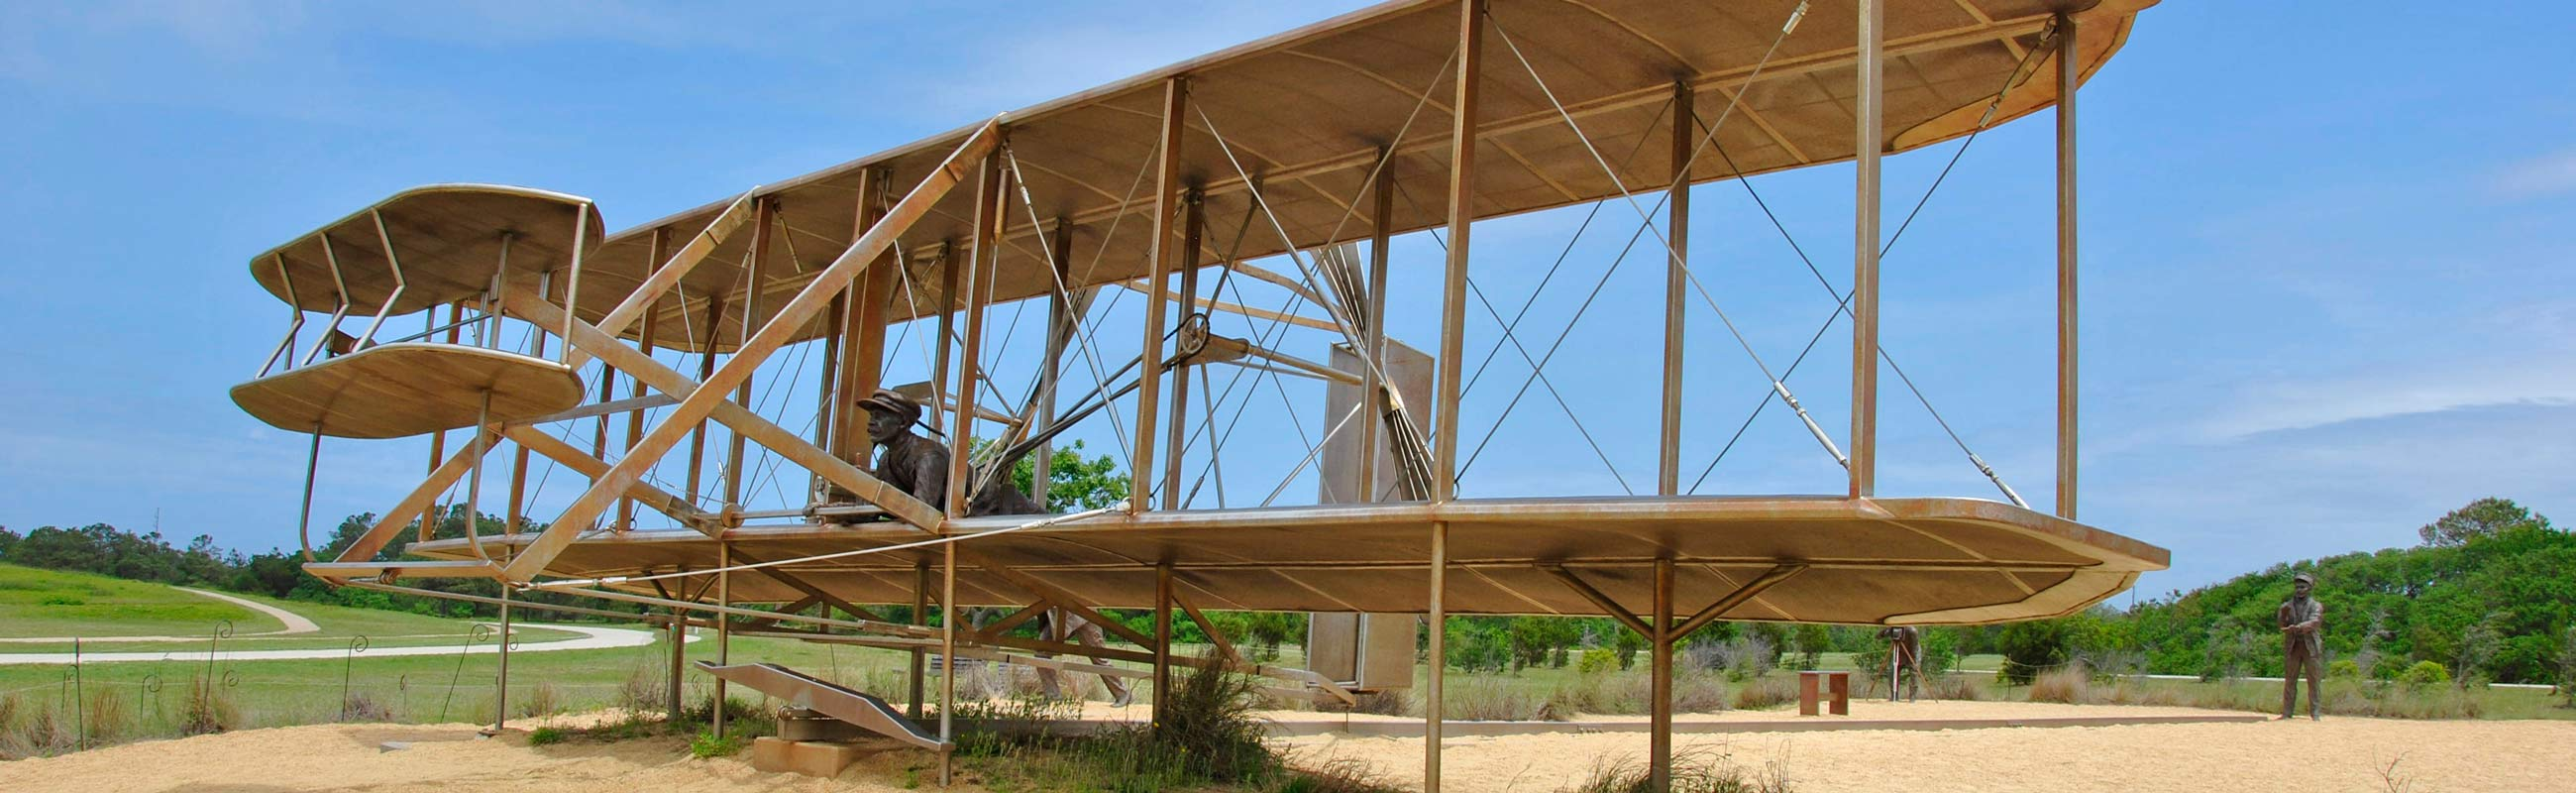 a replica of the wright flyer